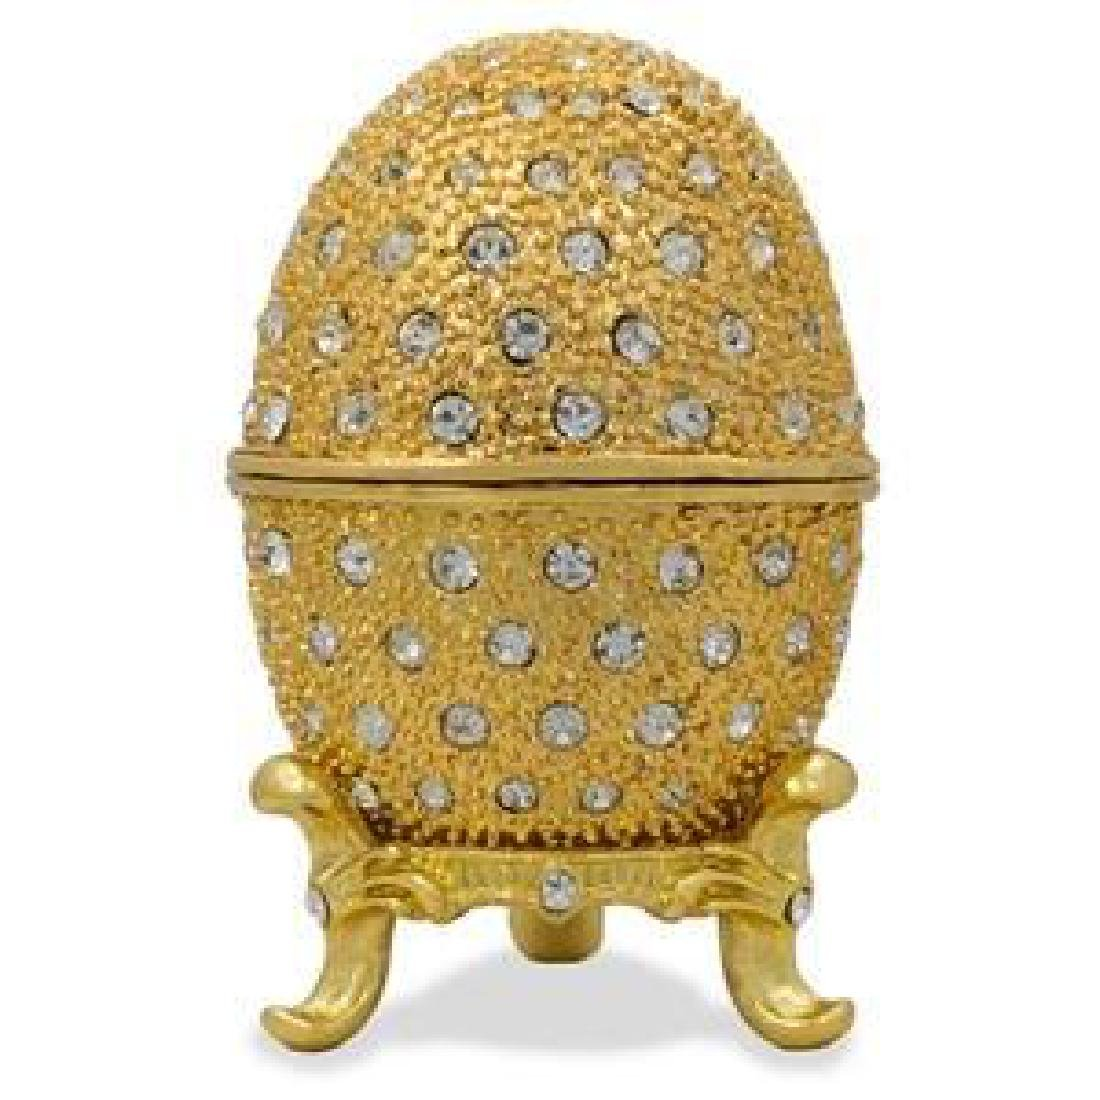 Faberge Inspired Golden Crystals Russian Trinket Box